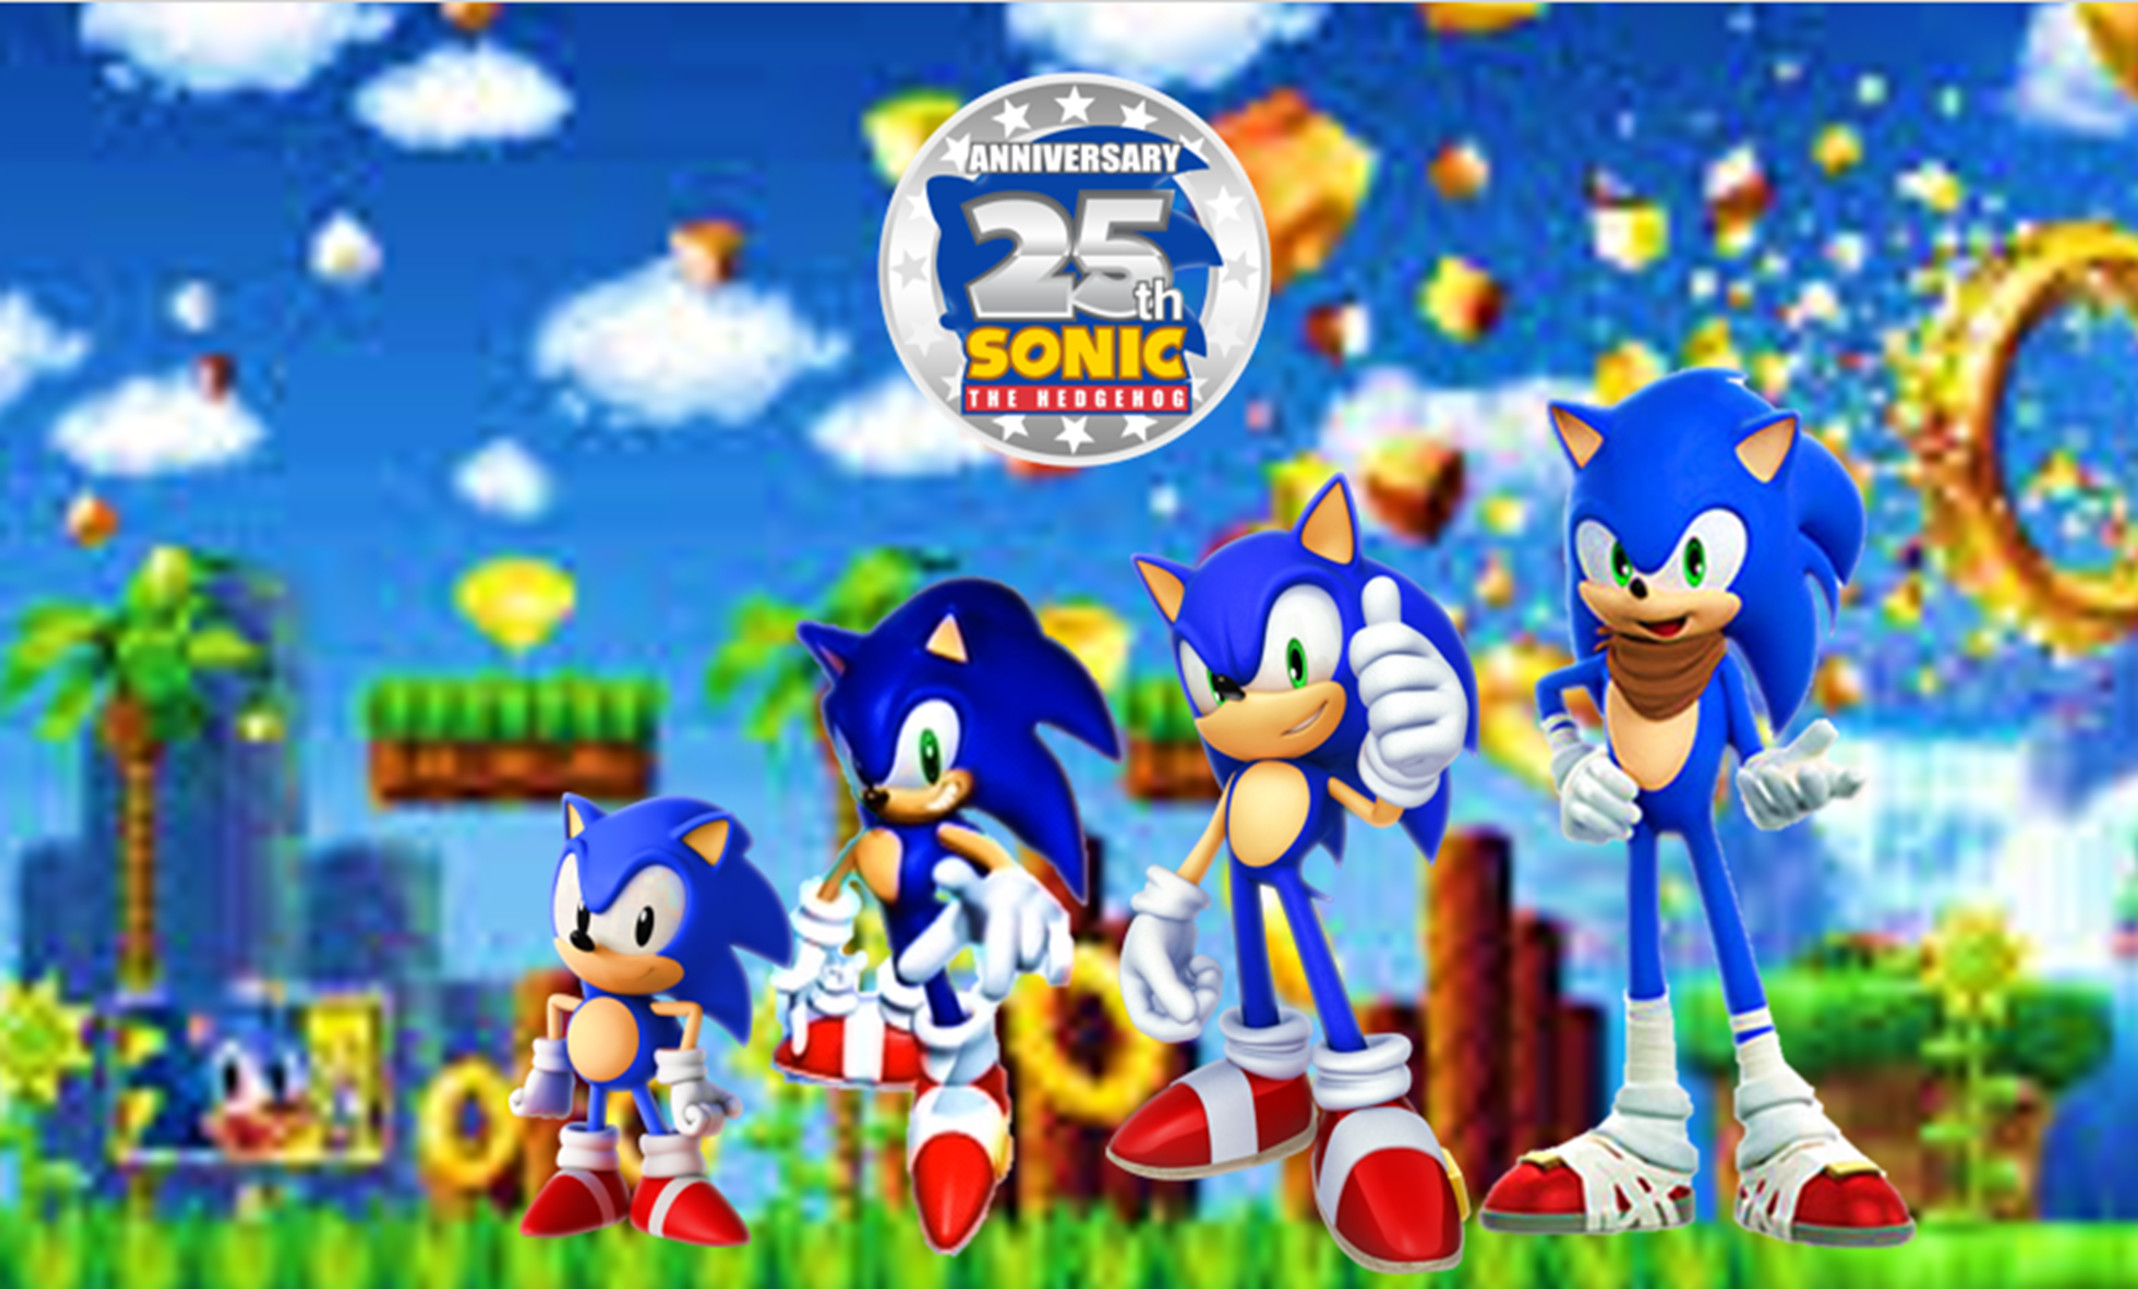 … 25th Anniversary of Sonic the Hedgehog by 9029561